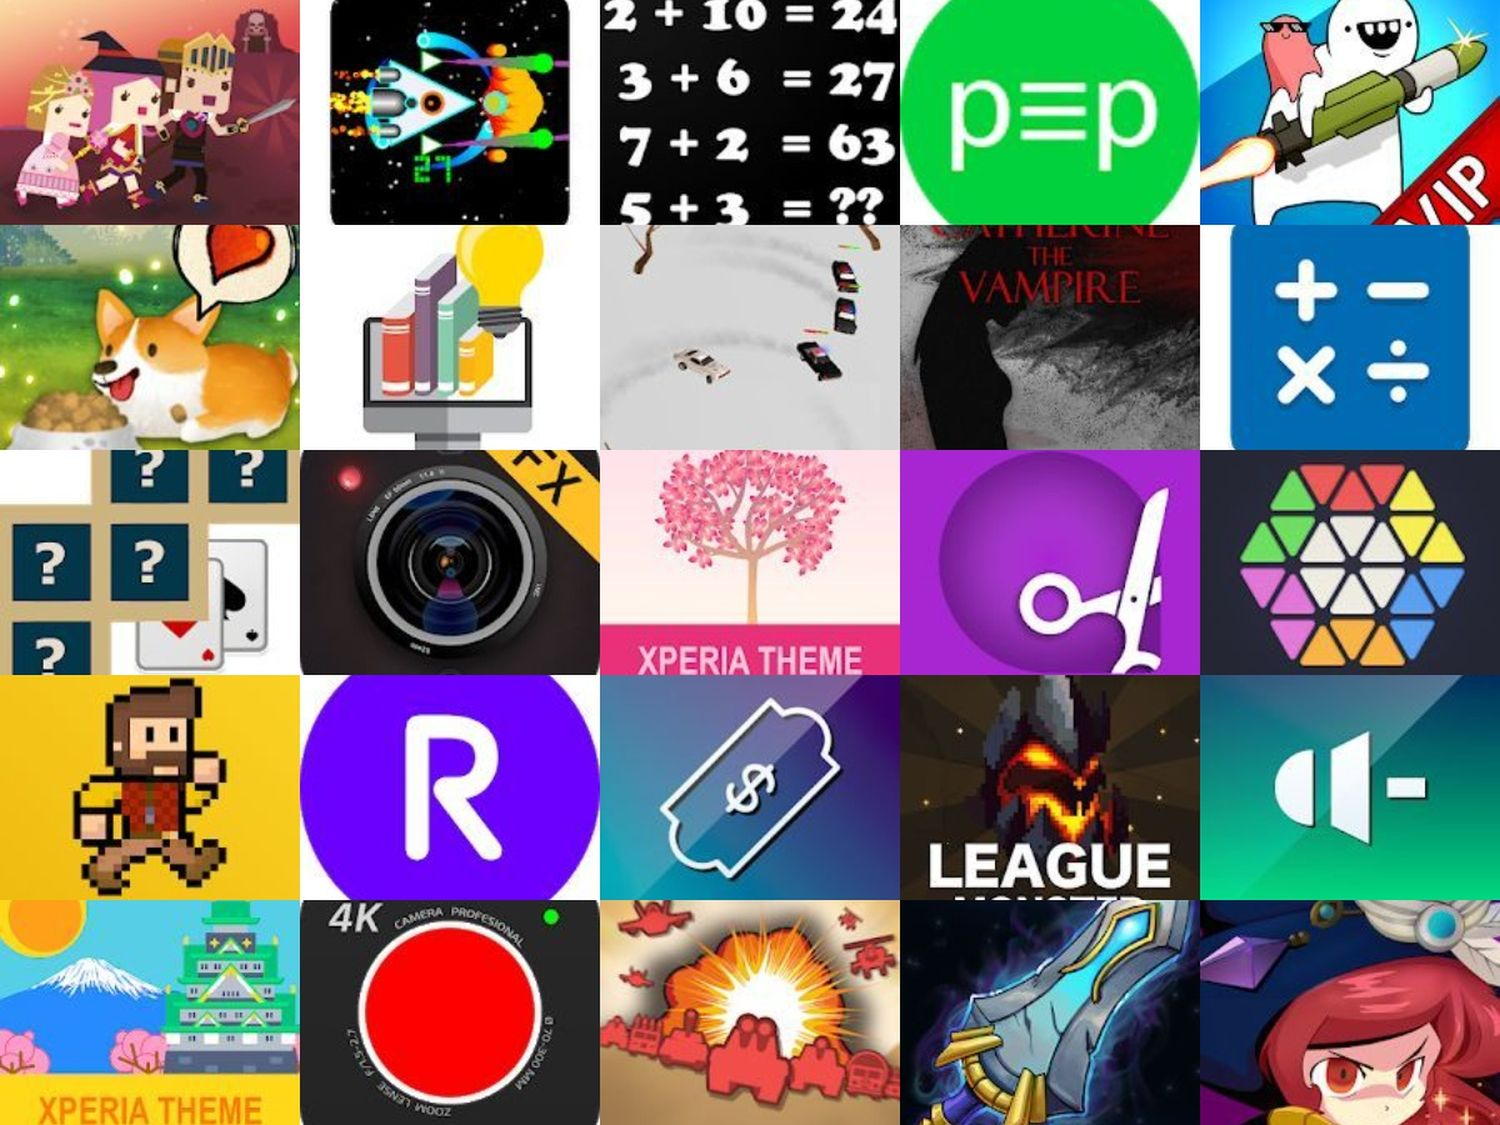 apps 14.11.2020